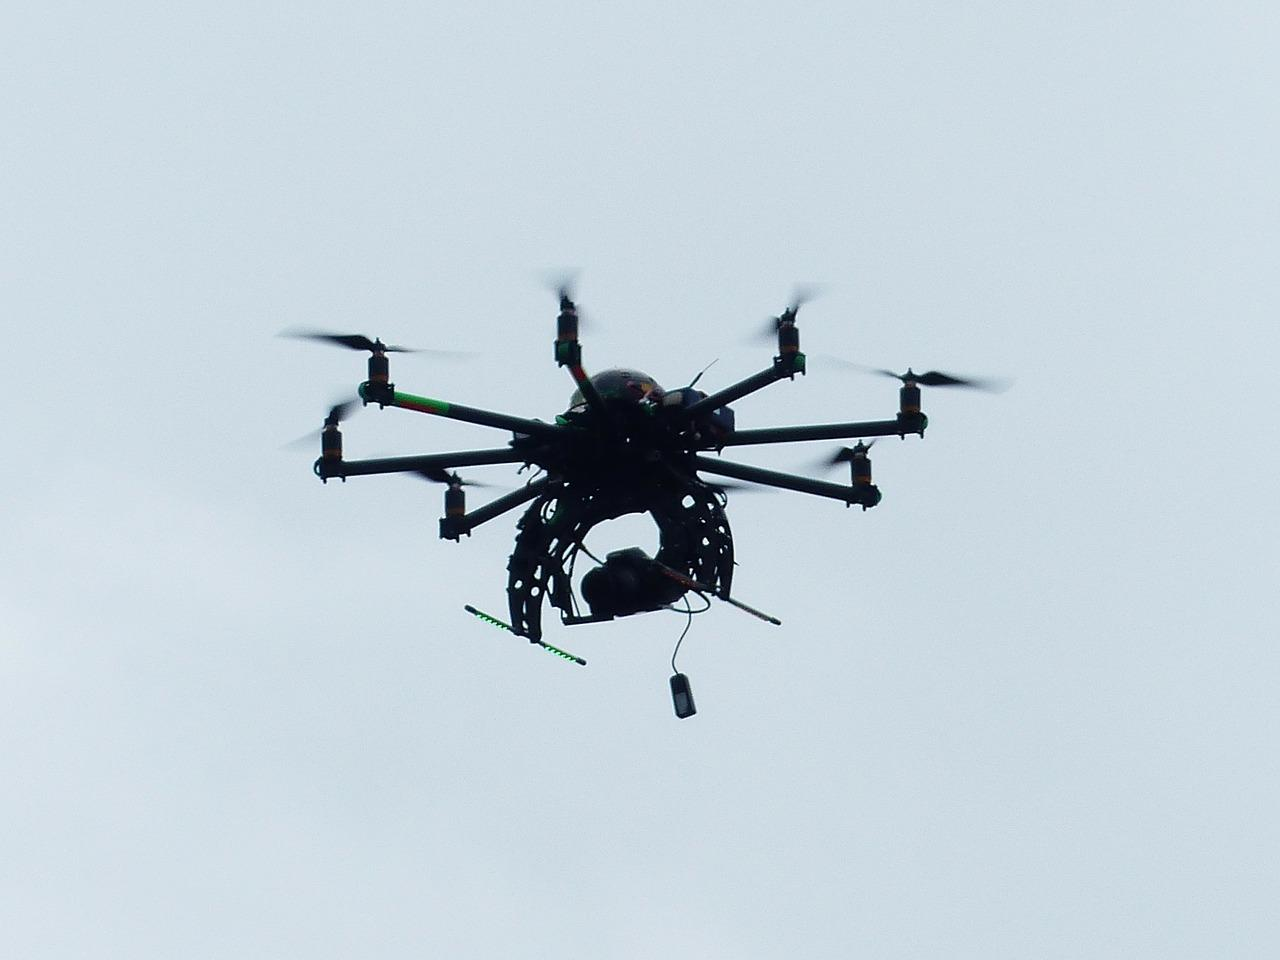 Black Drone Flying in the Air